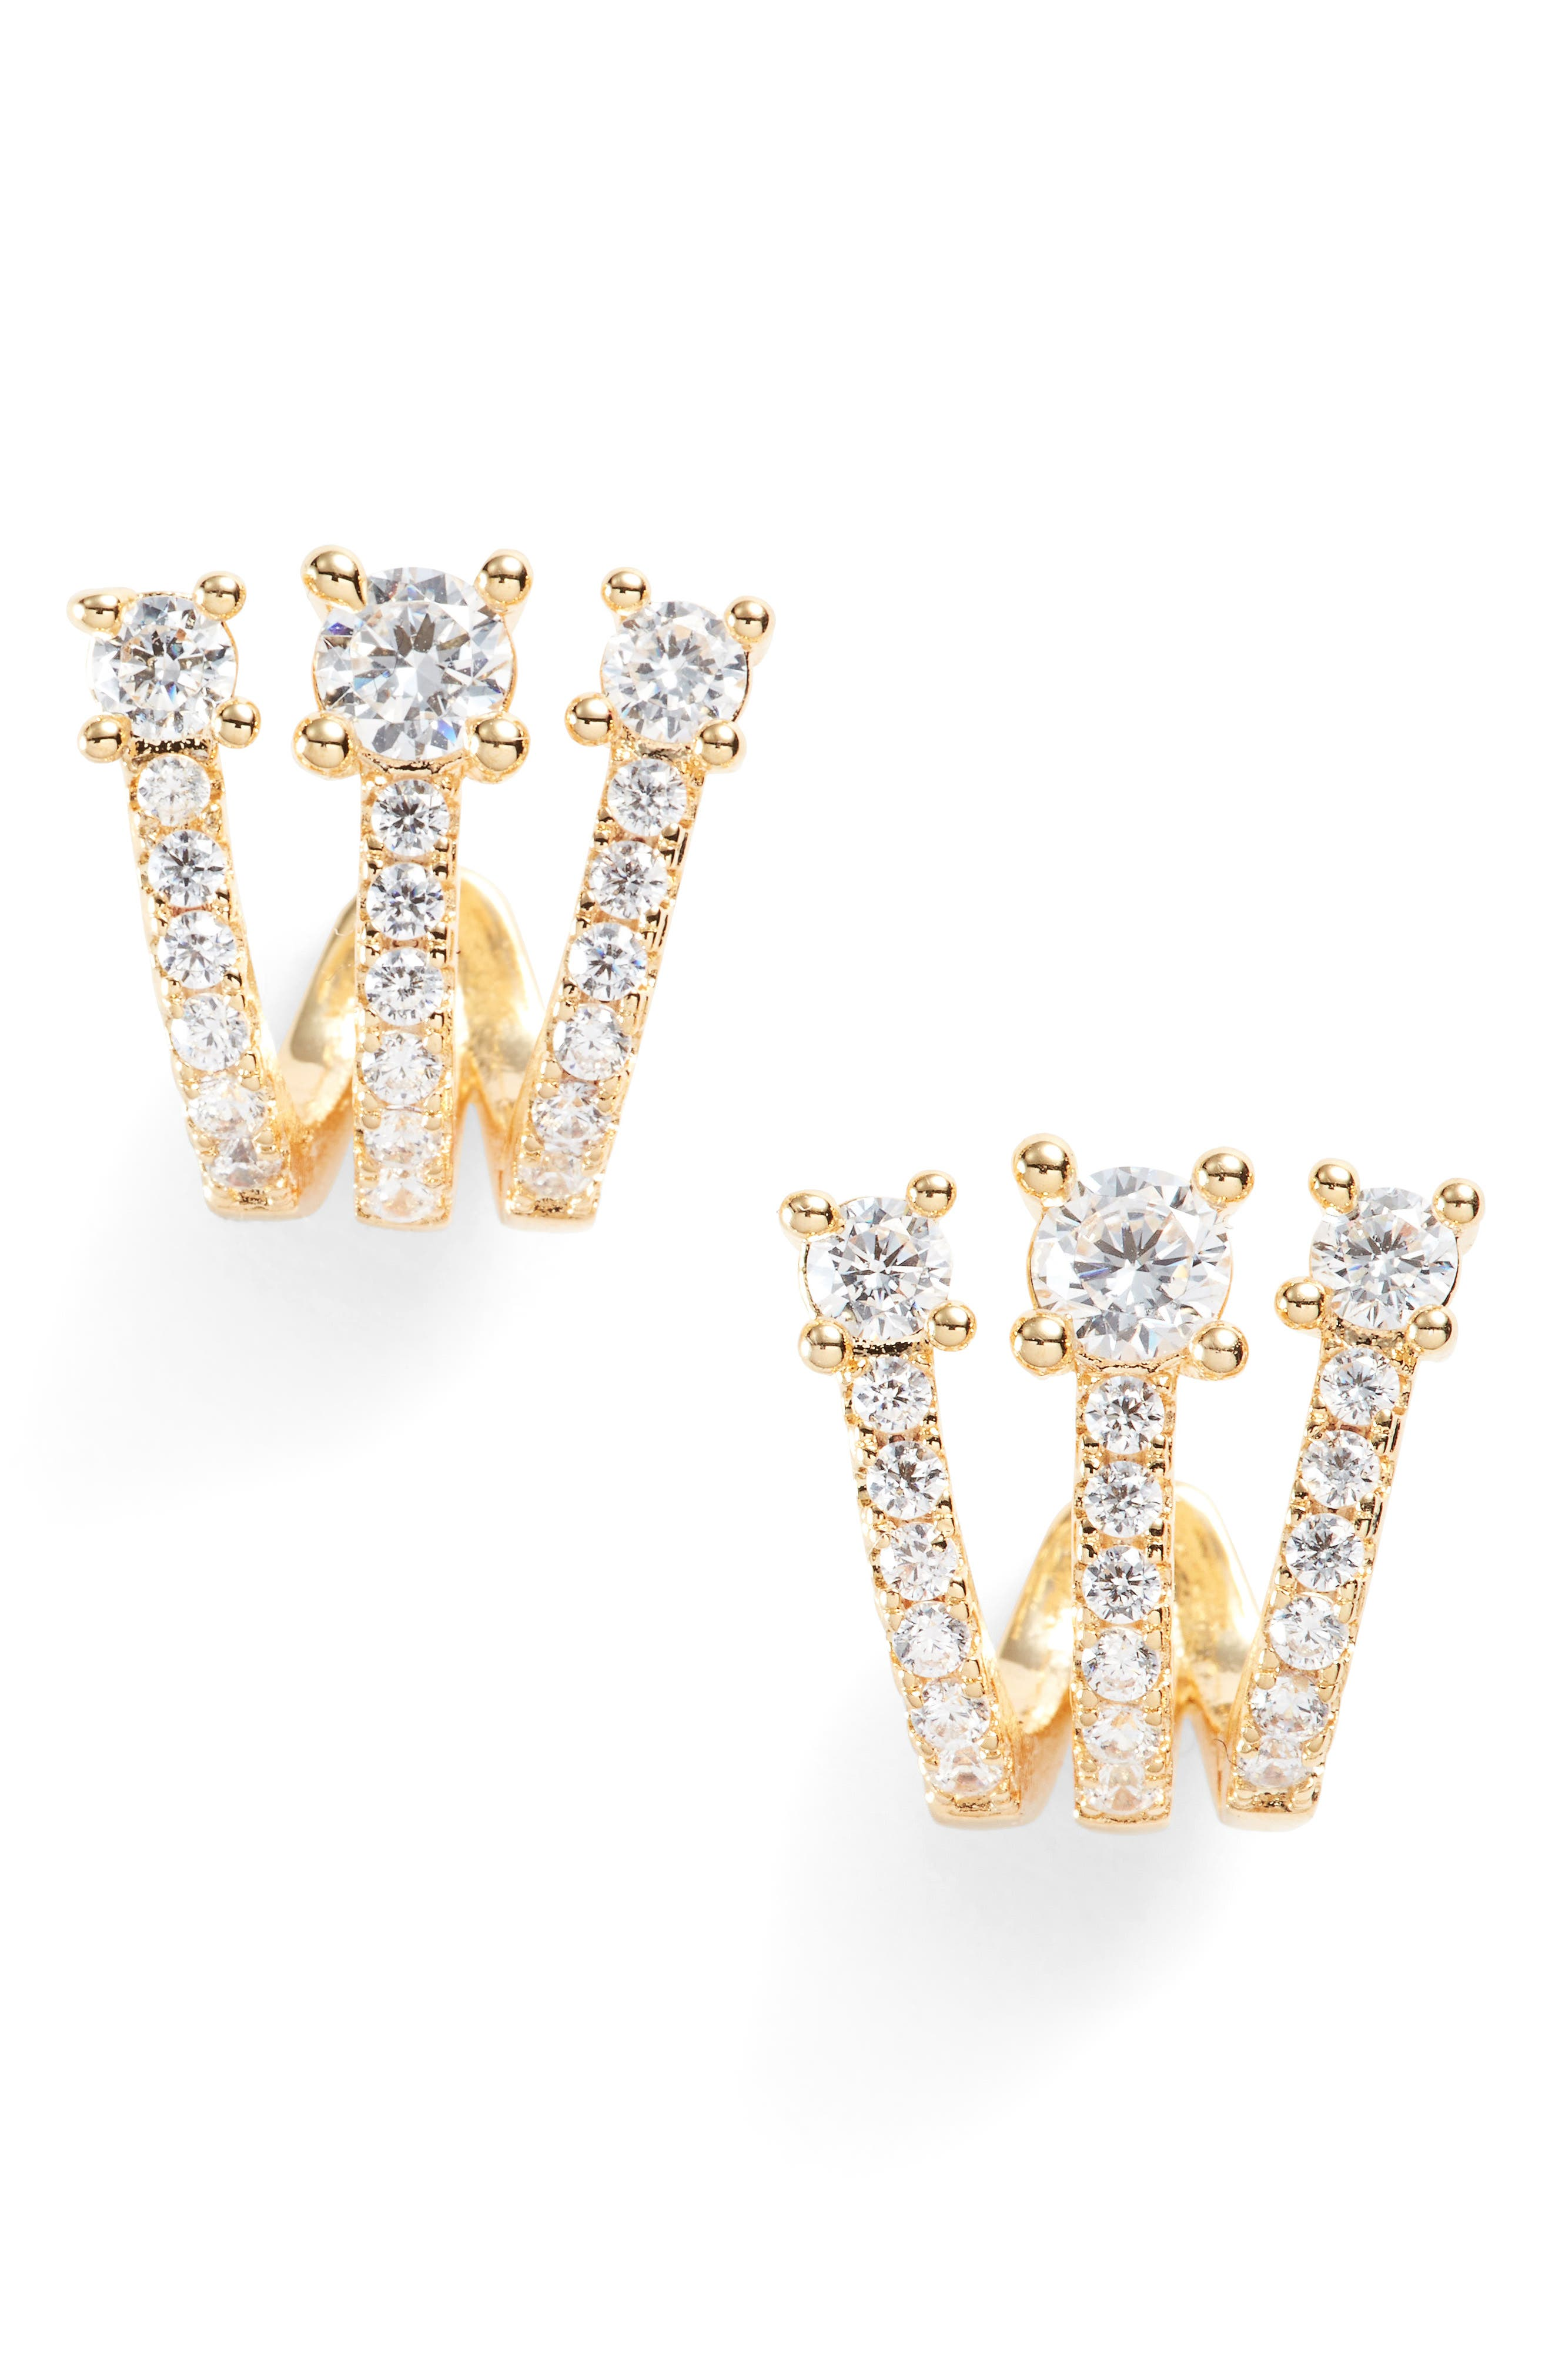 MELINDA MARIA Katherine Crystal Huggie Earrings